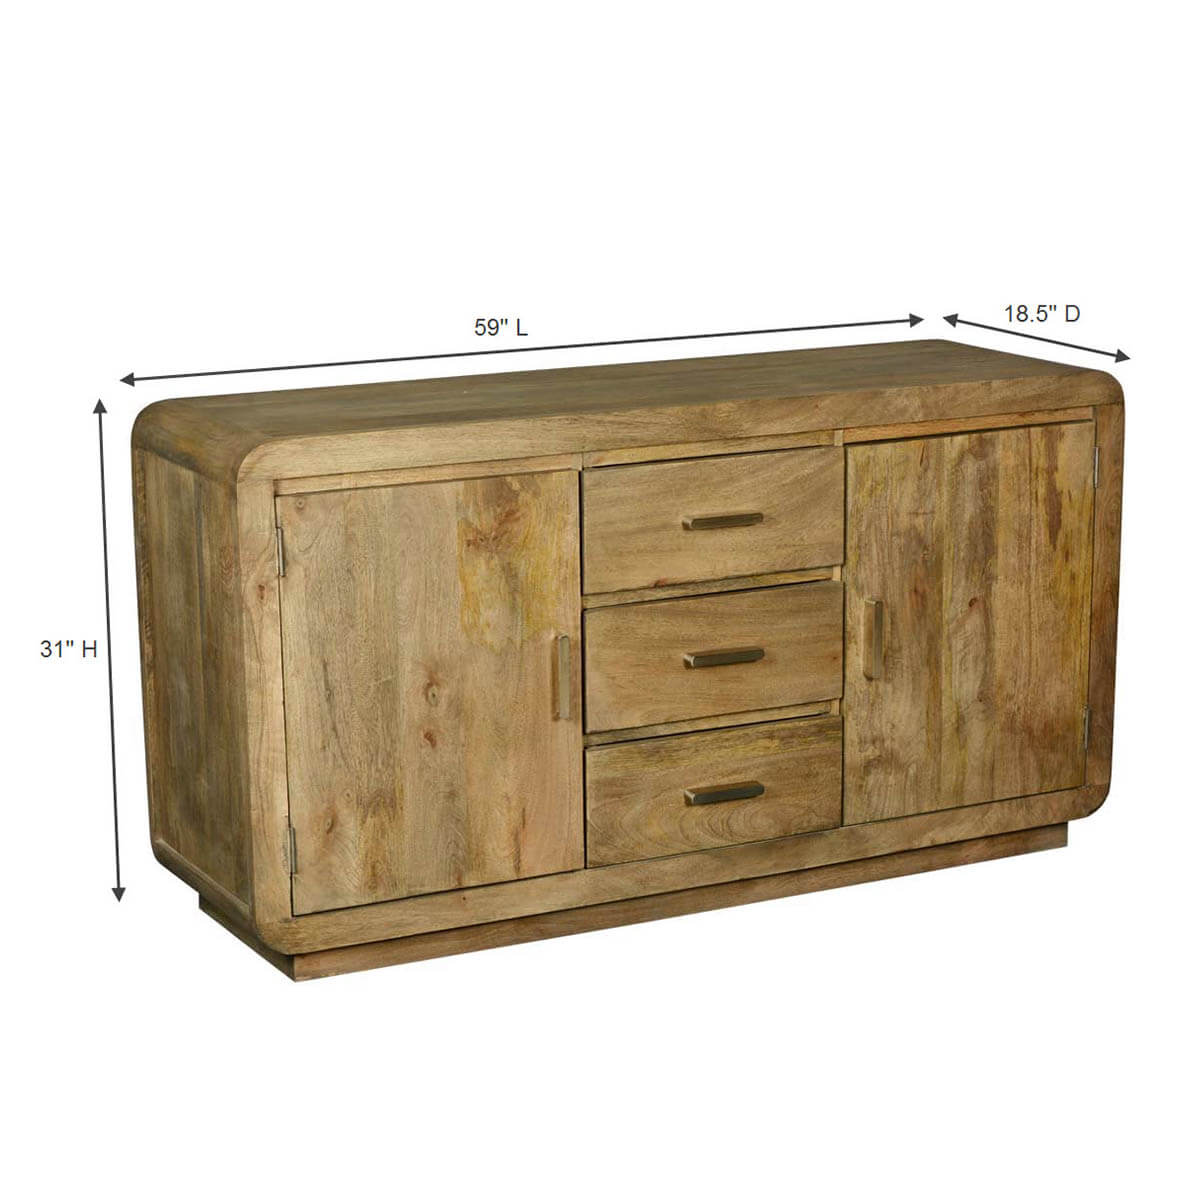 Collection Rounded Corners Mango Wood Buffet Cabinet With Drawers. Full resolution‎  file, nominally Width 1200 Height 1200 pixels, file with #B28C19.